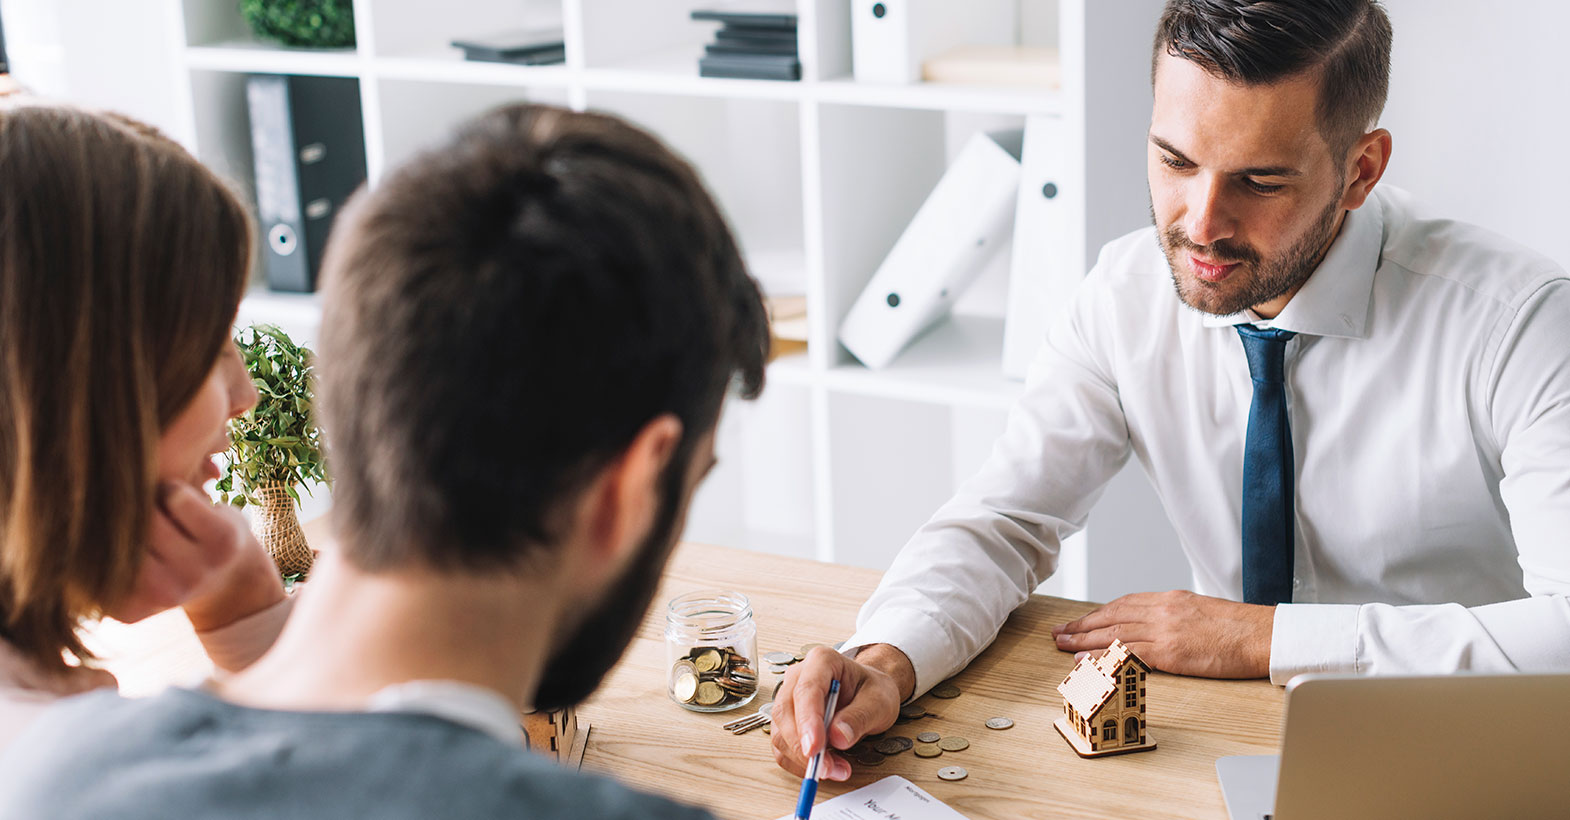 What to discuss before working with your clients